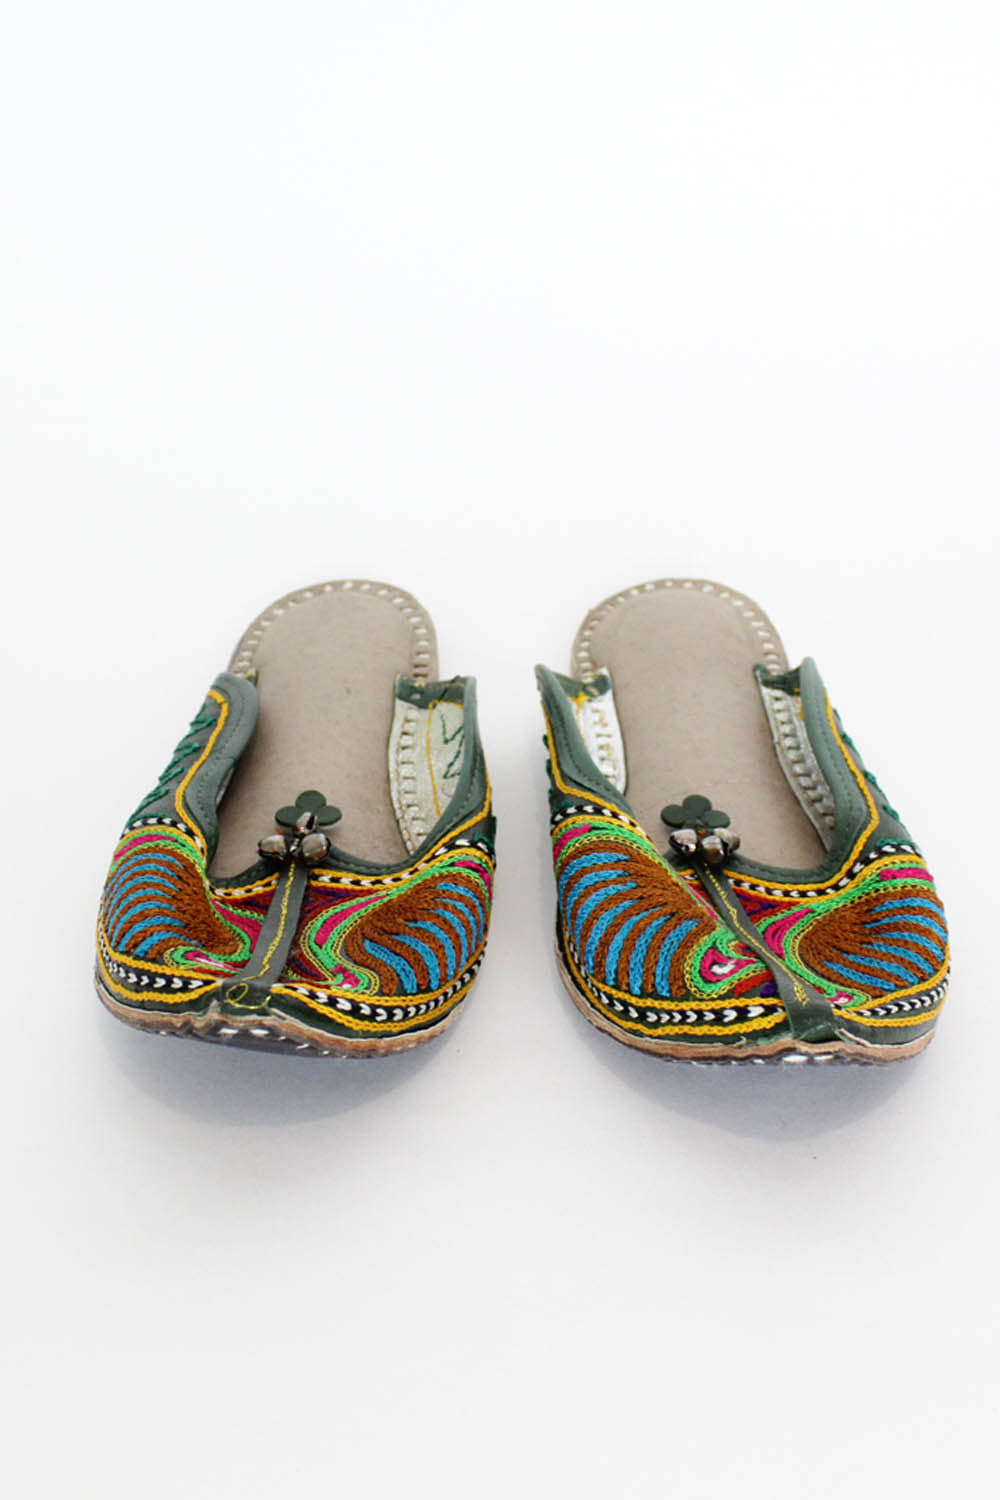 Green Leather Khussa Slippers 8.5